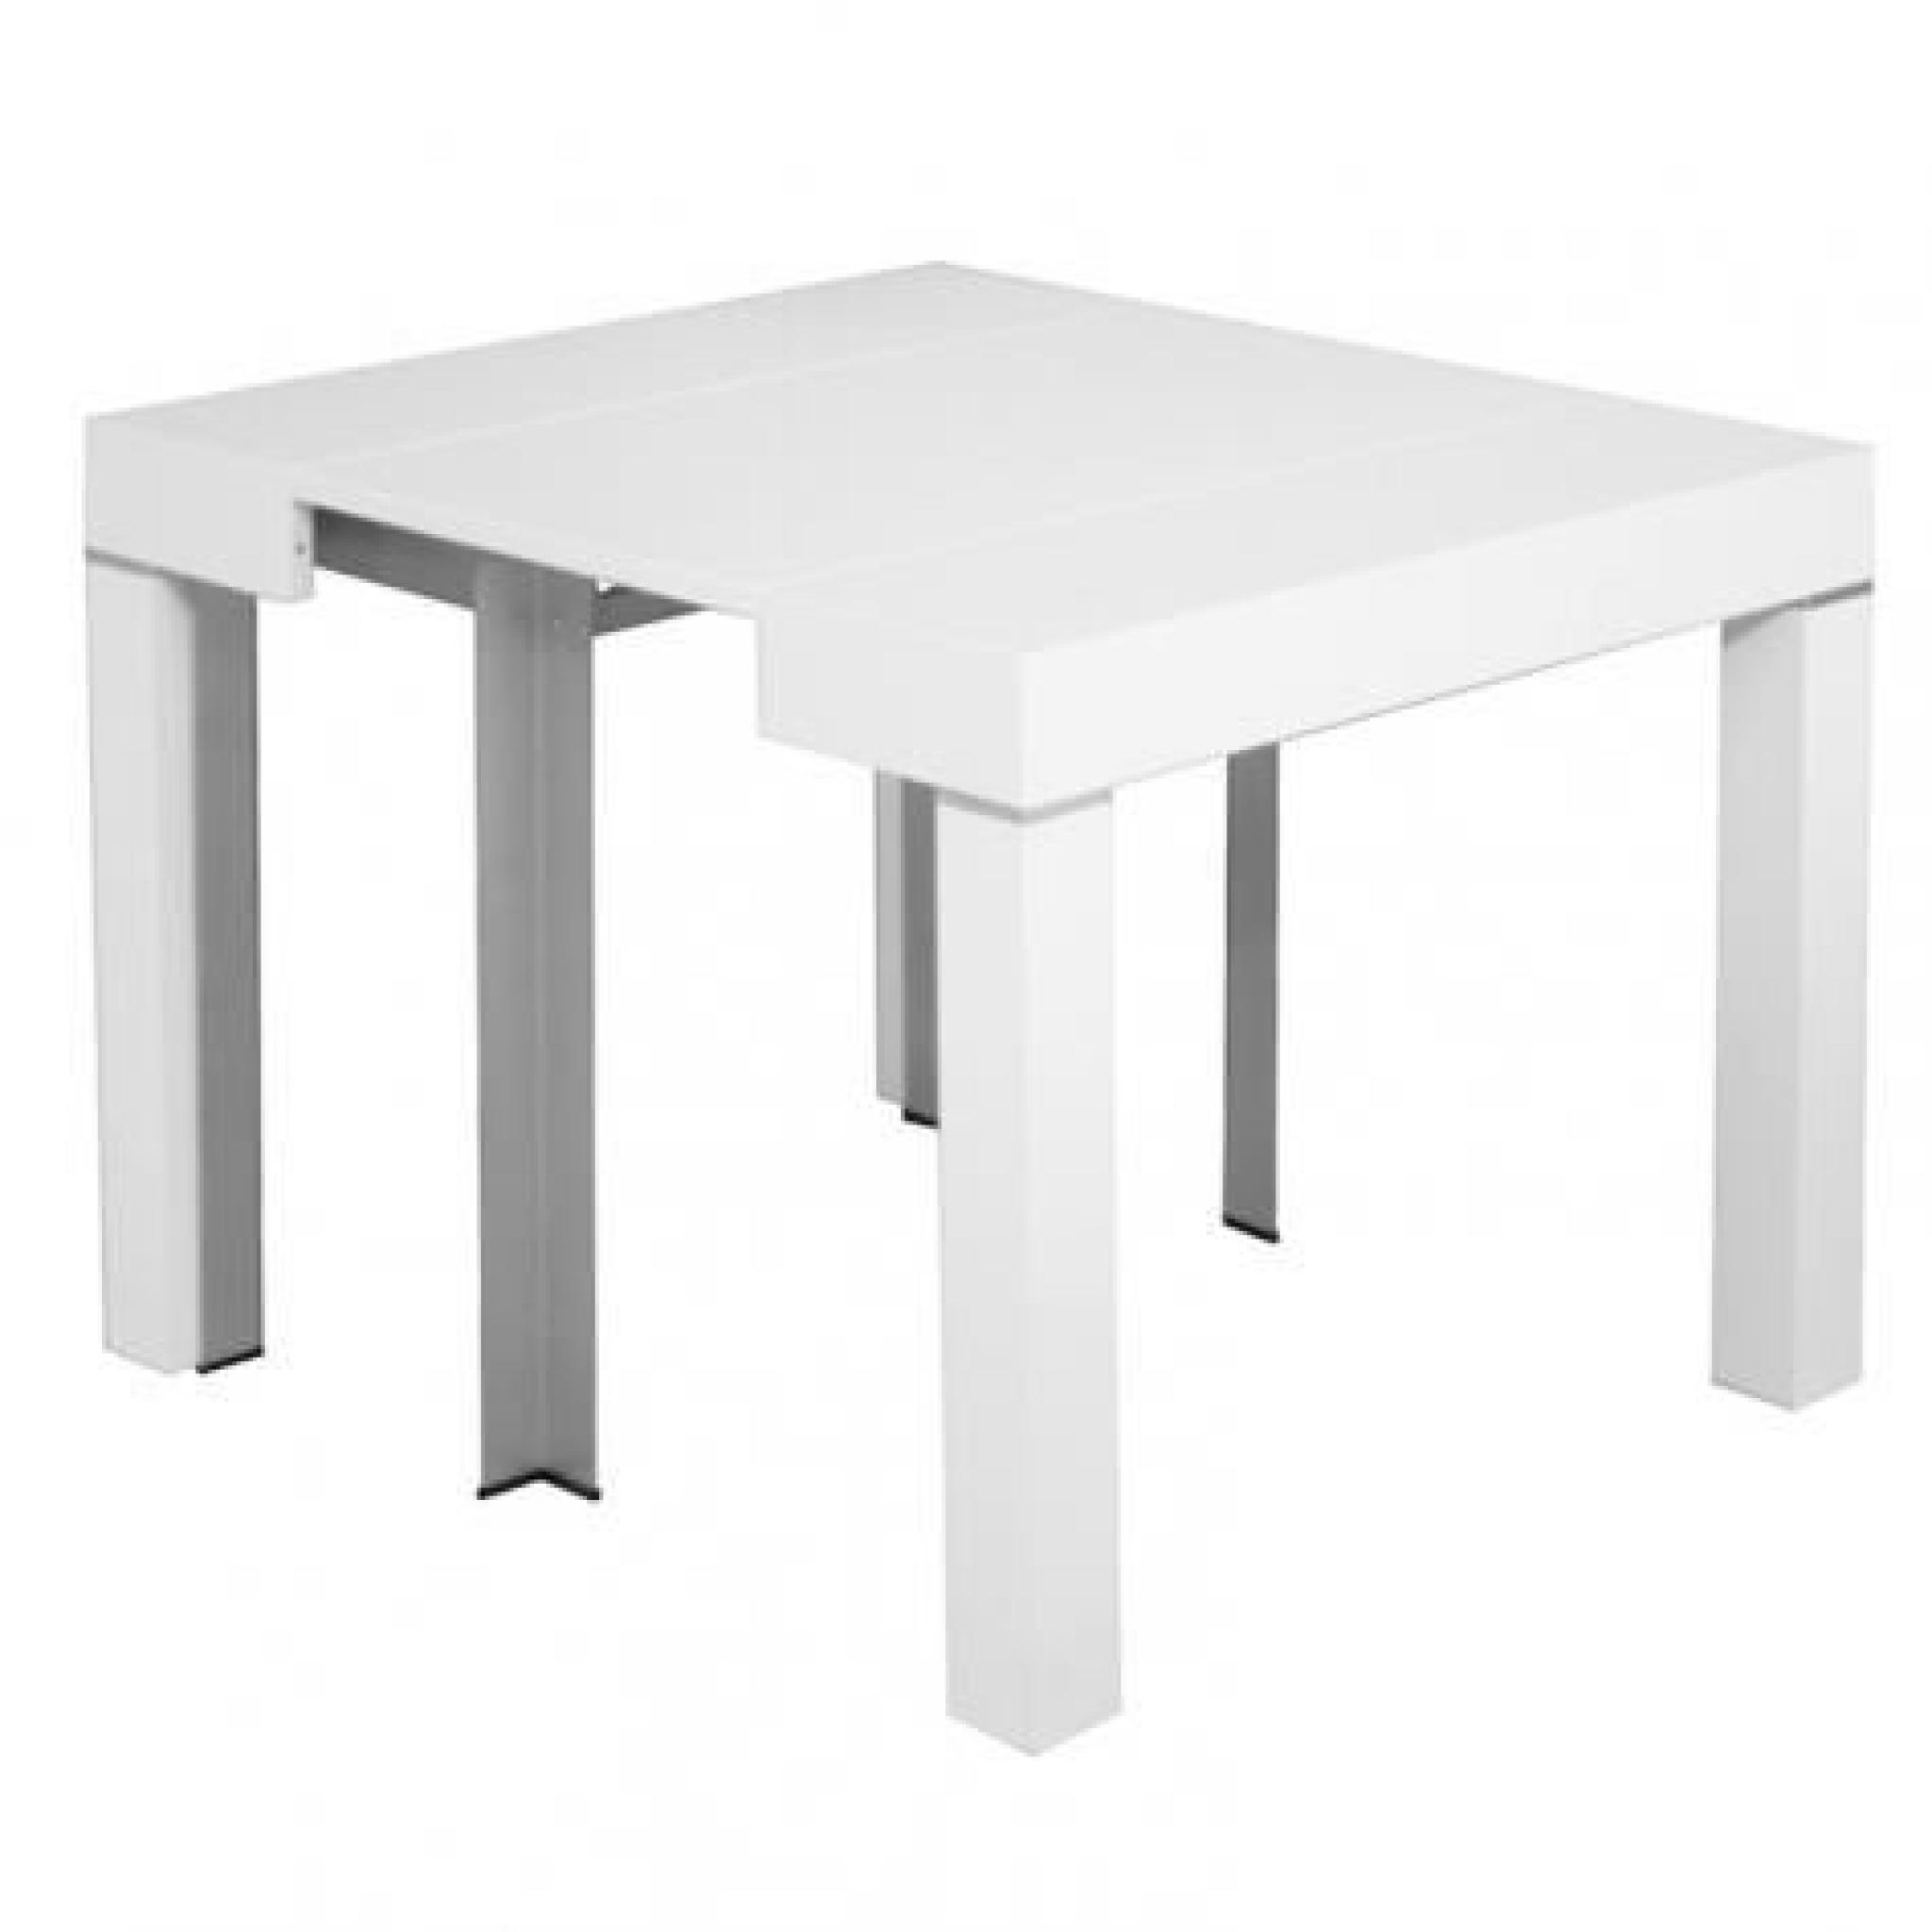 Table haute extensible pas cher for Table ovale extensible pas cher